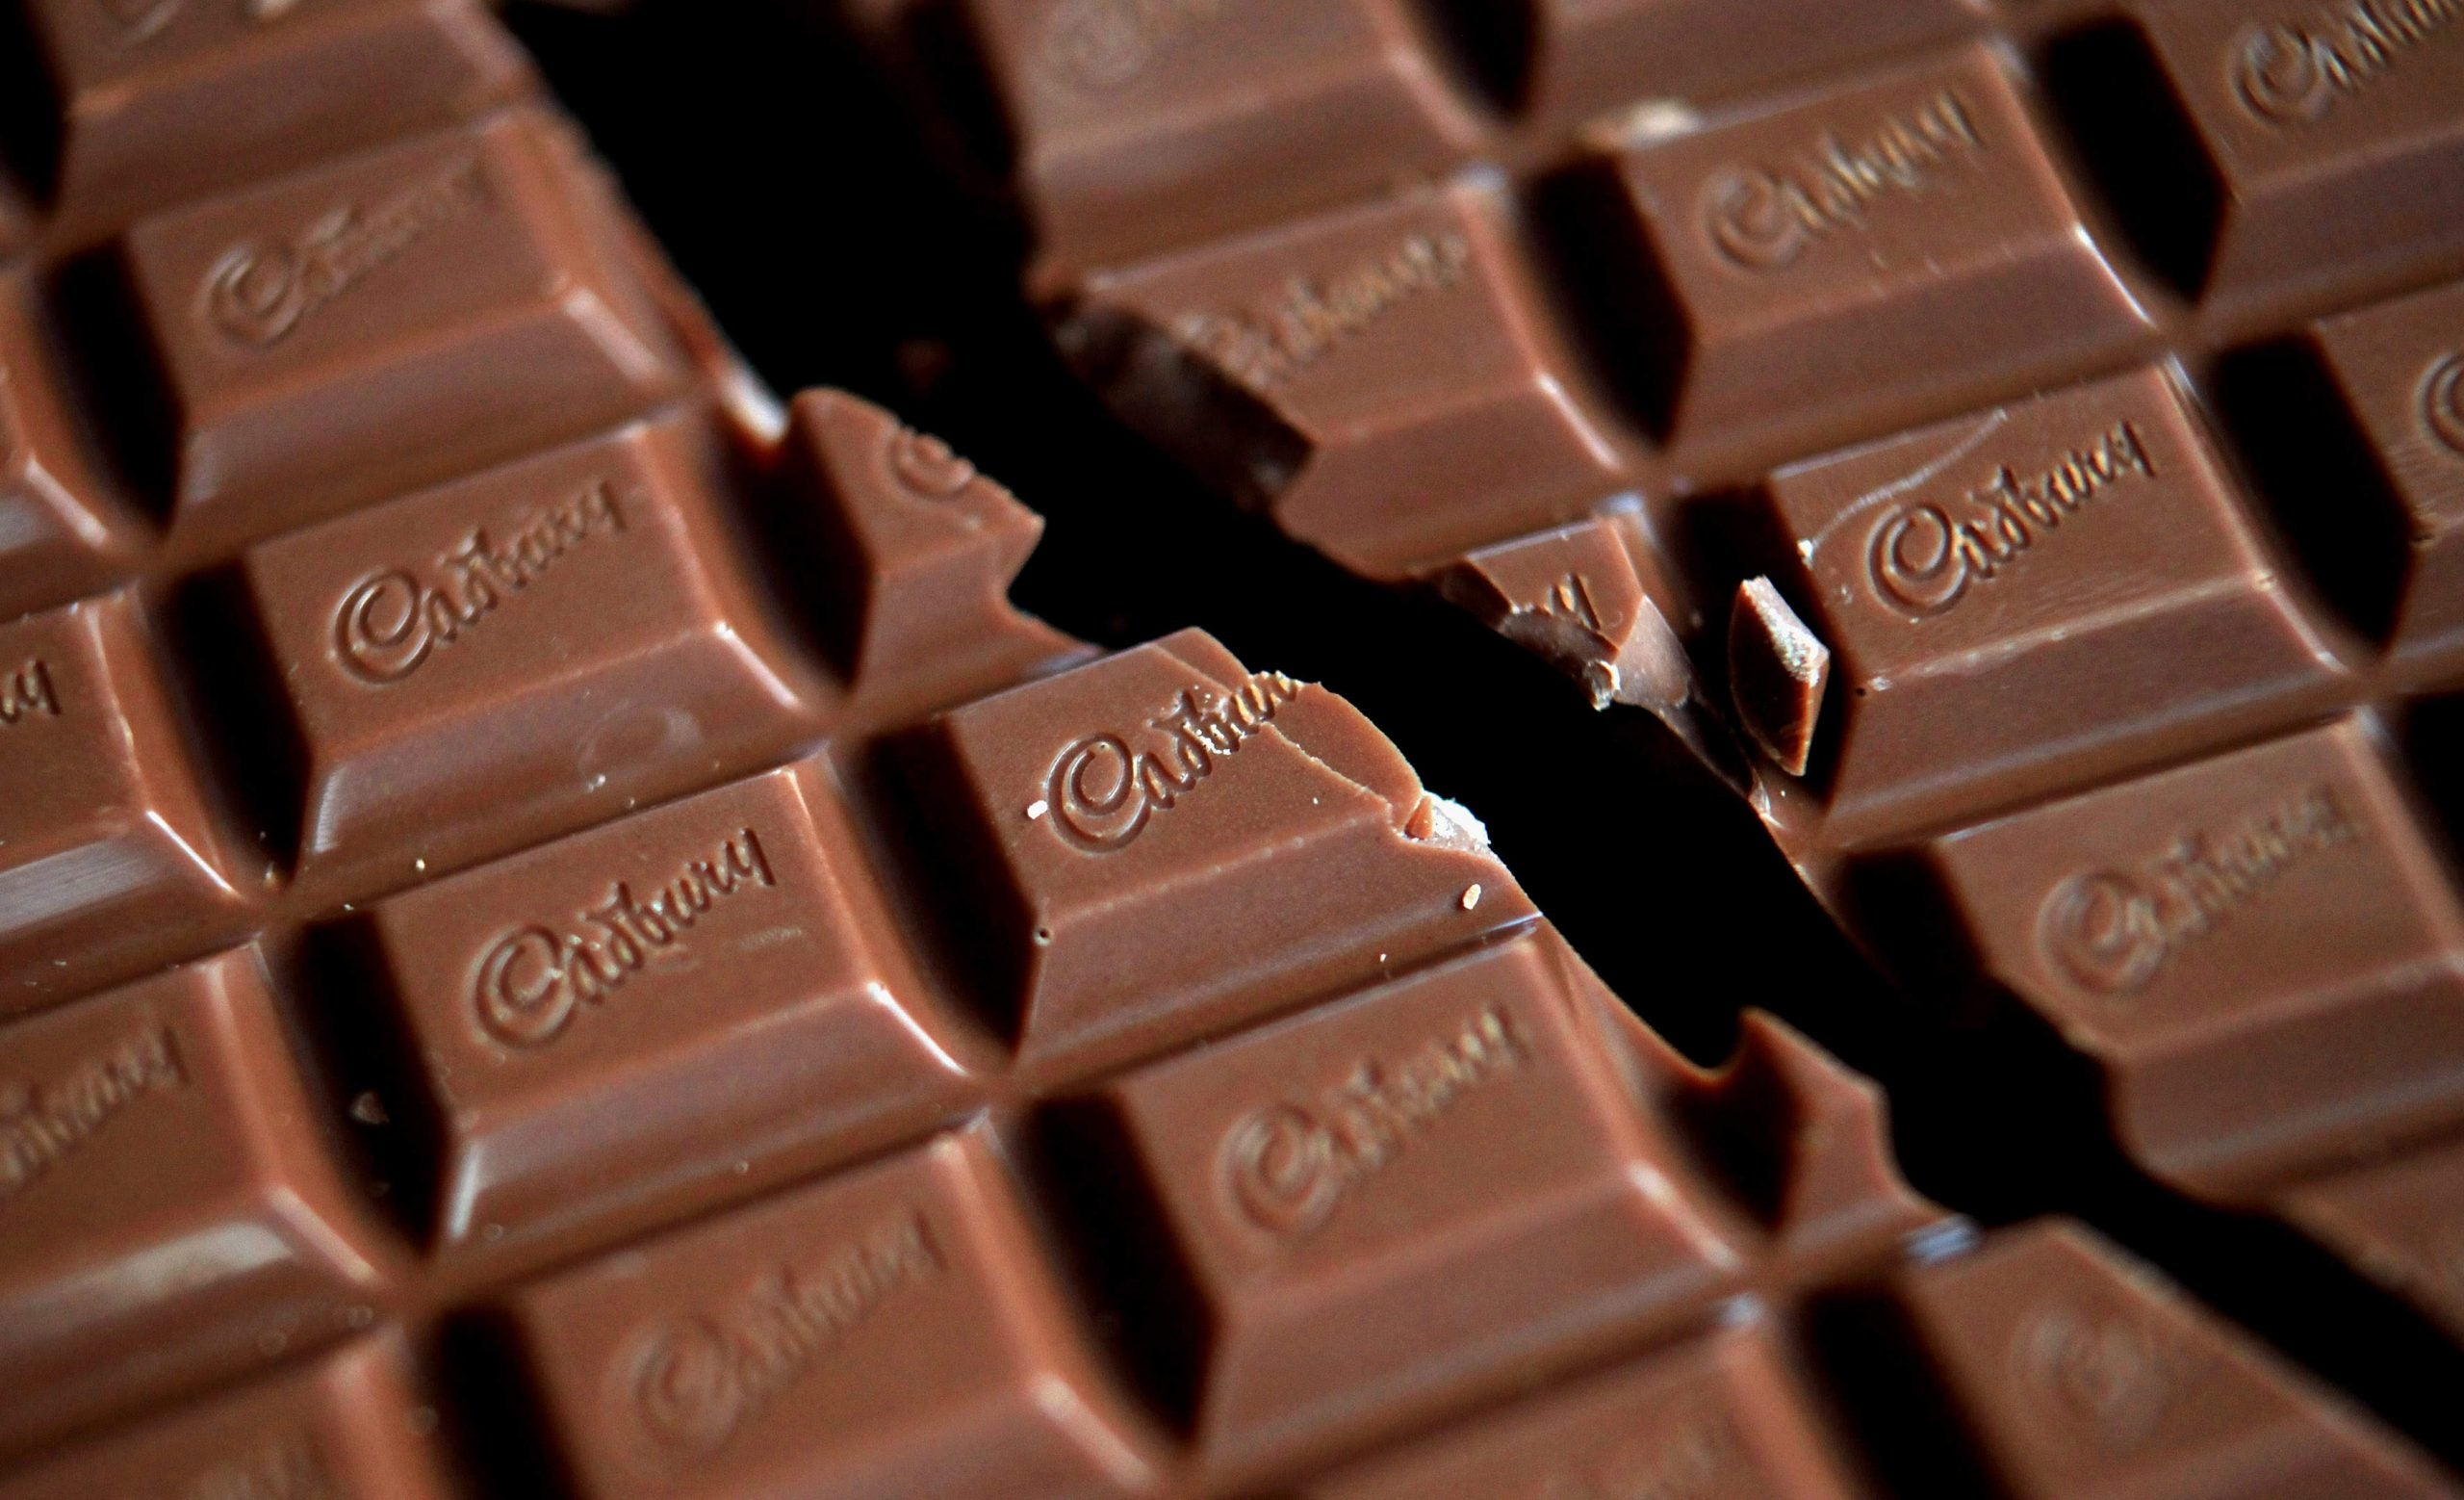 The Cadbury's affair shows where the Conservatives' priorities really are